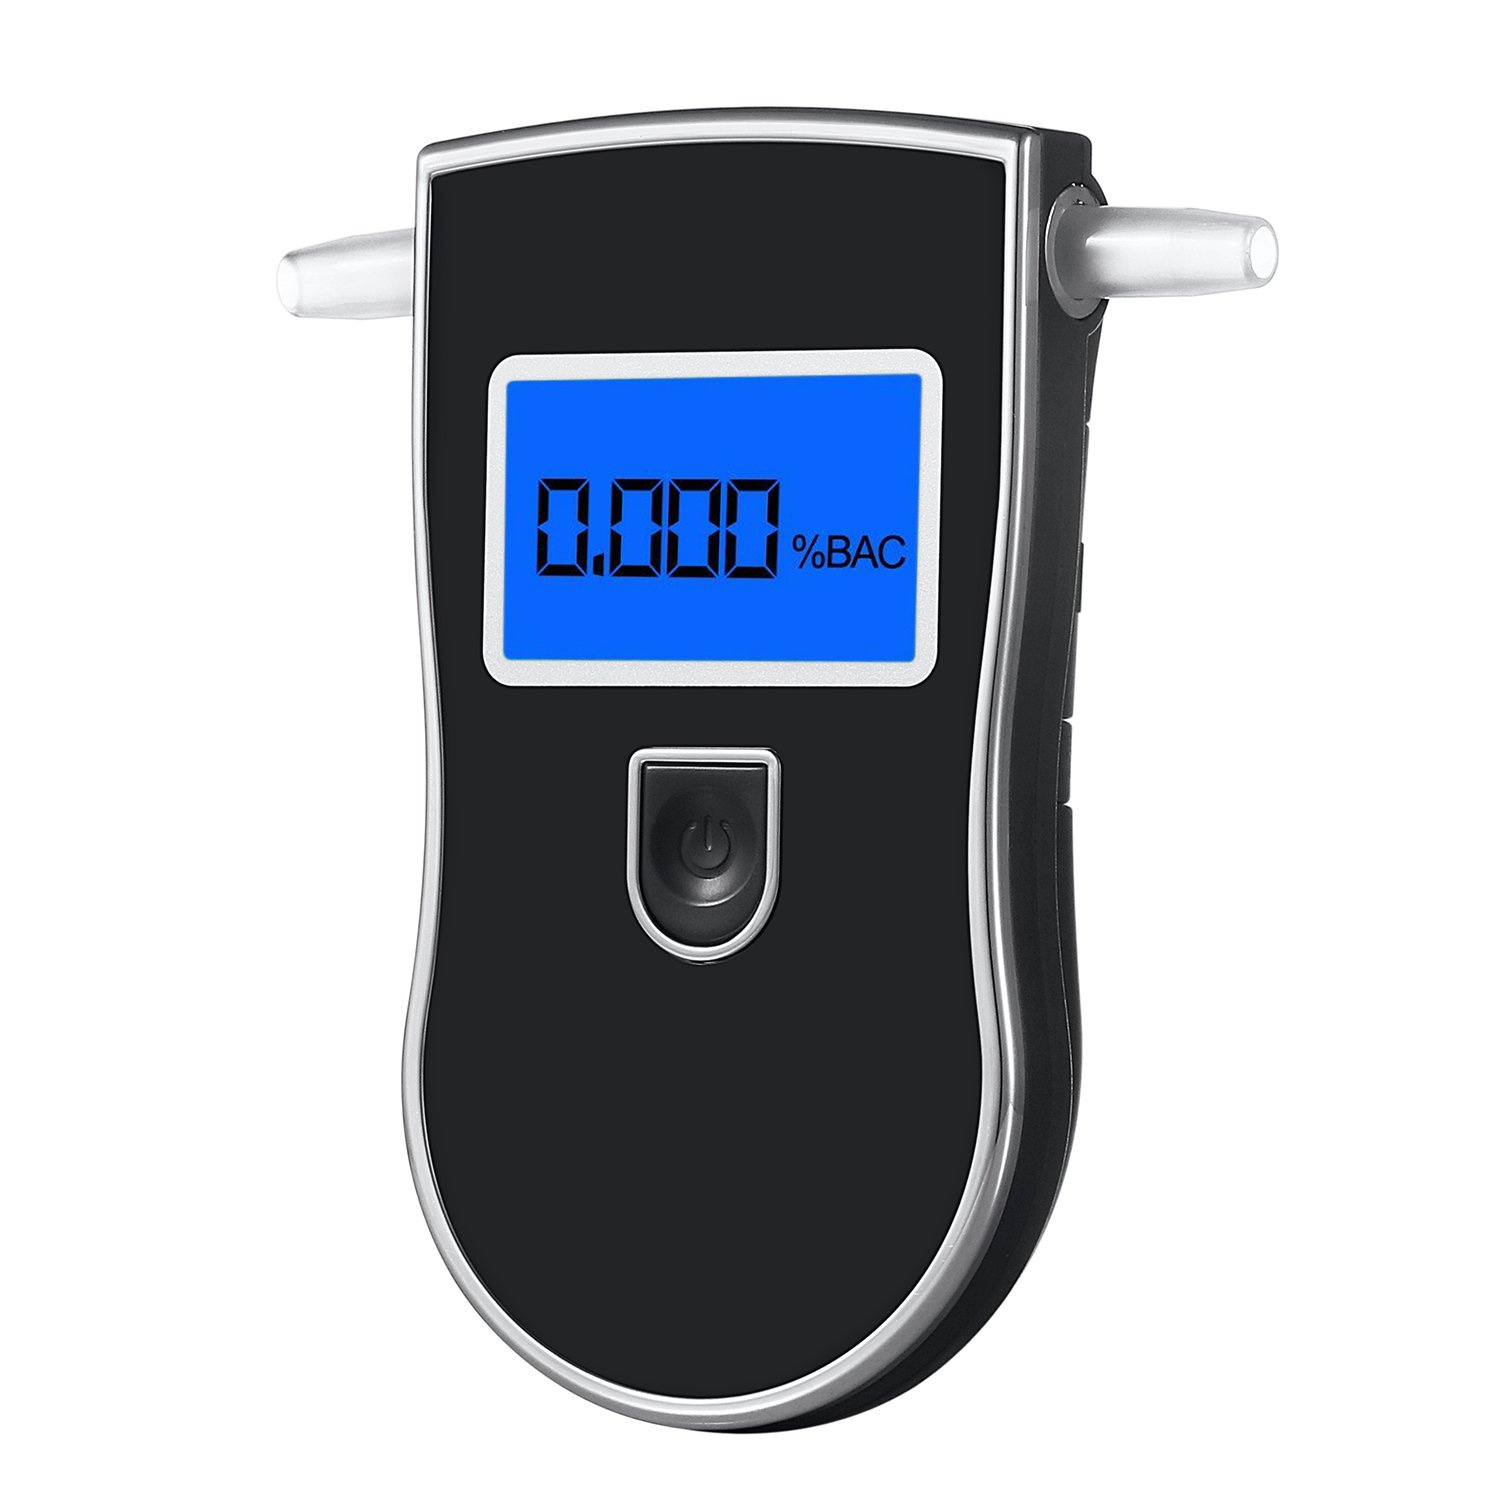 GDbow Alcohol Tester Portable Breathalyzer LCD Display Digital Breath Alcohol Tester with 5 Mouthpieces